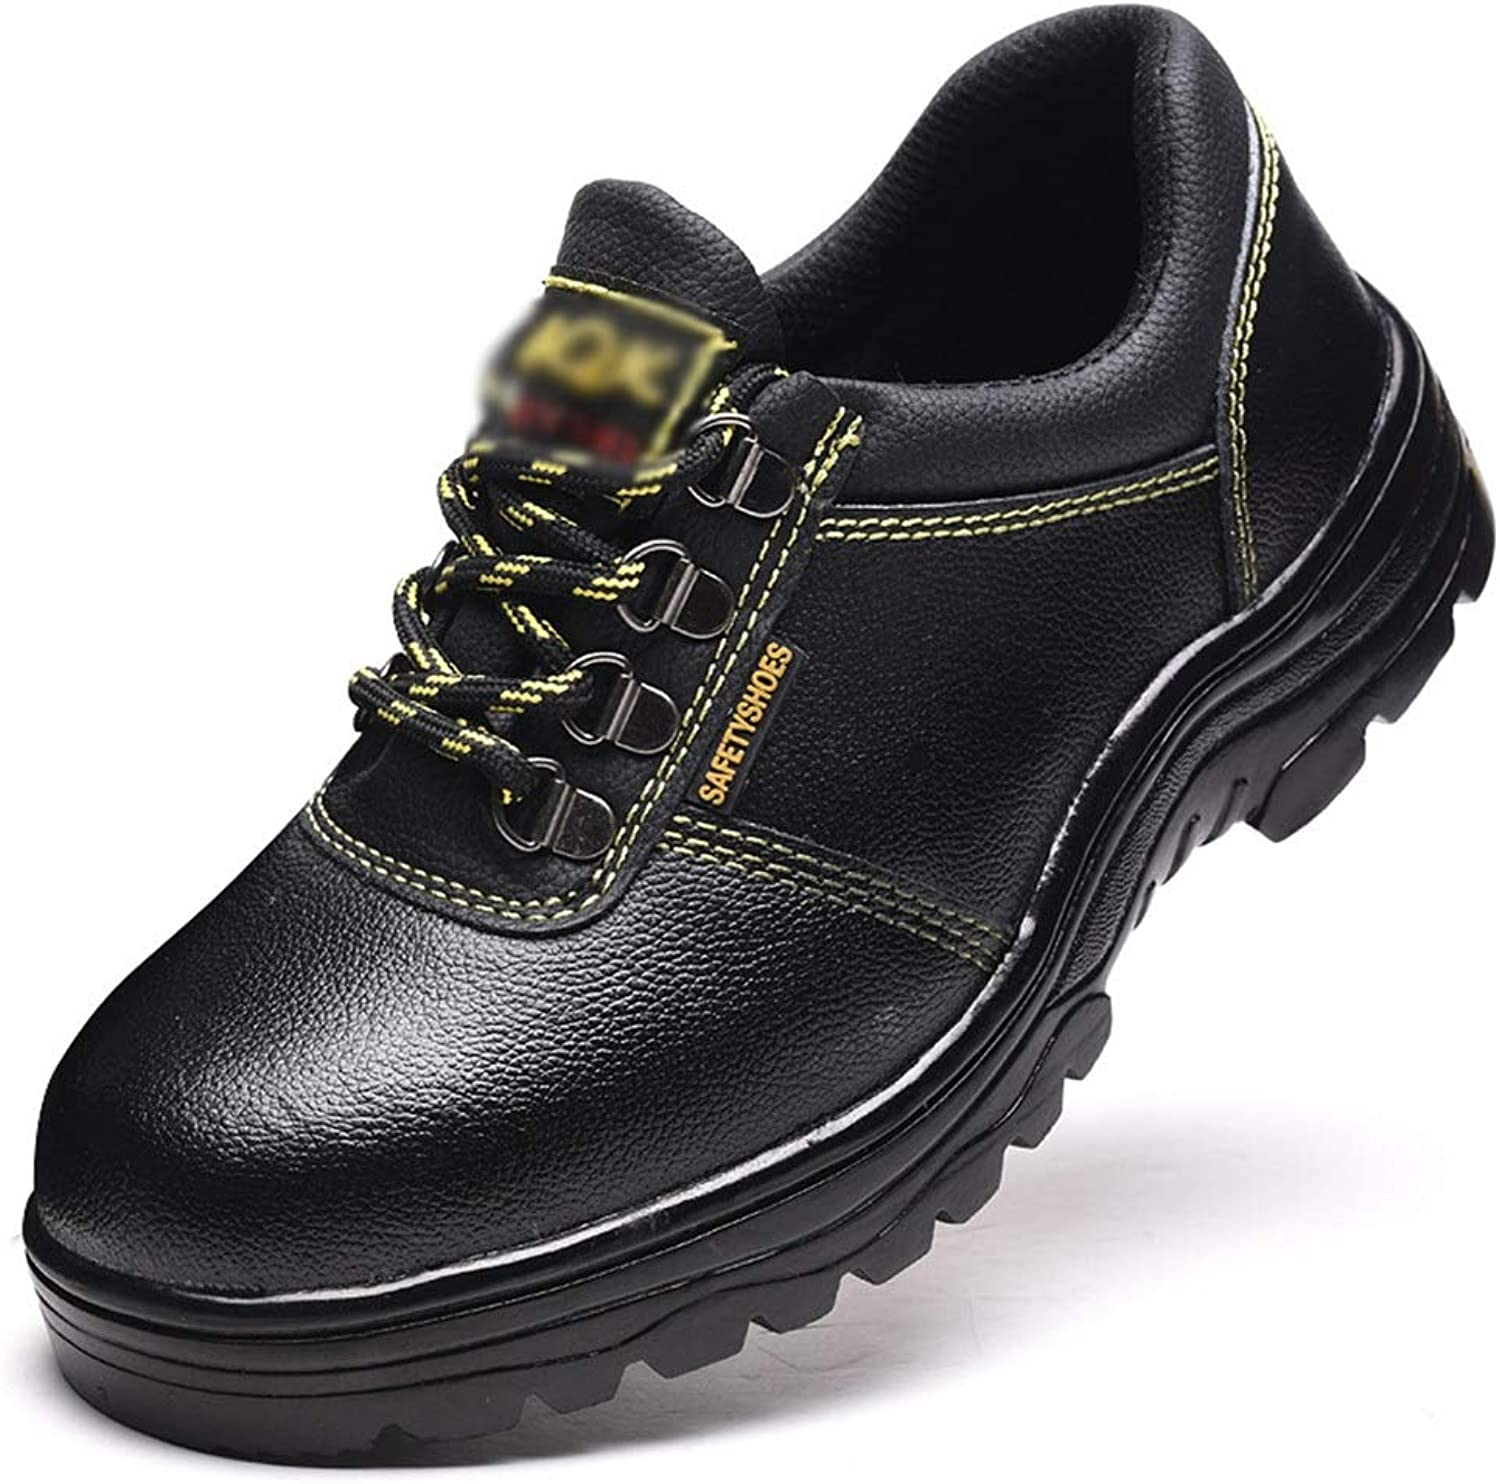 Predective shoes, Anti-static Safety shoes Men's Outdoor Work shoes With Leather shoes, Cricket shoes (color   Black, Size   44)